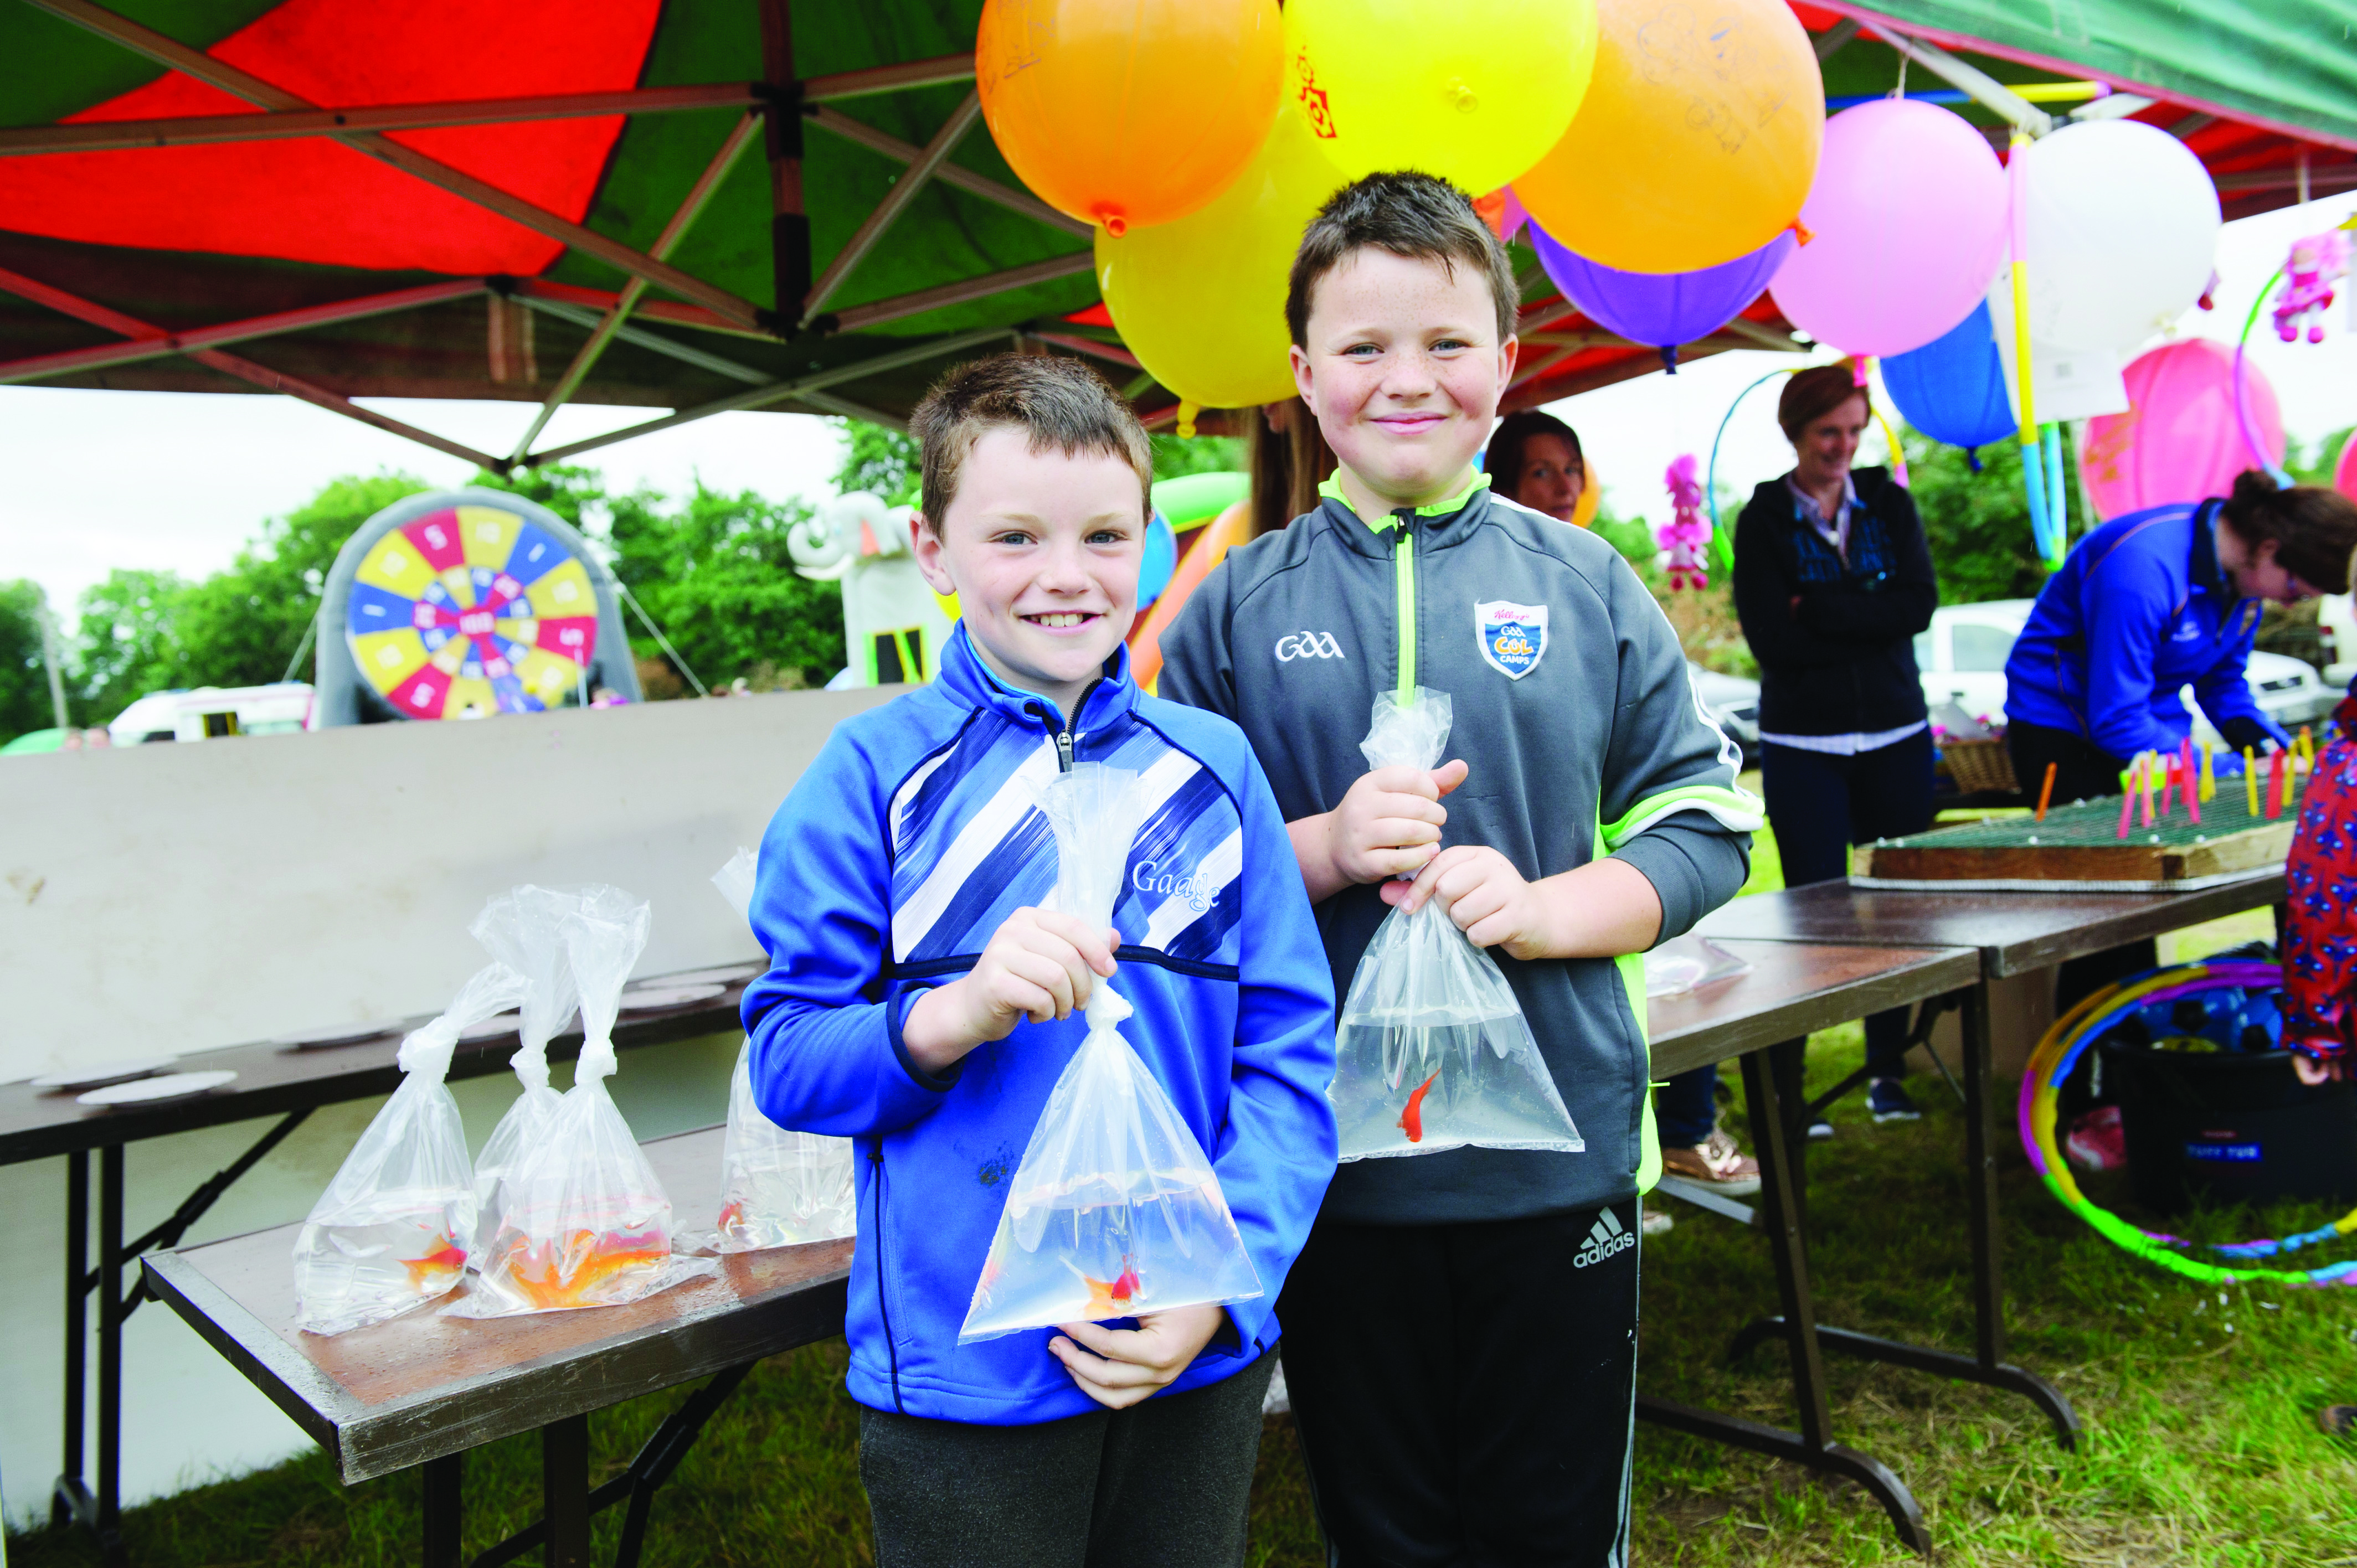 Luke McKenna and Donnacha McCluskey, with goldfish that they won at the Carrickroe Welcome Home Festival. ©Rory Geary/The Northern Standard